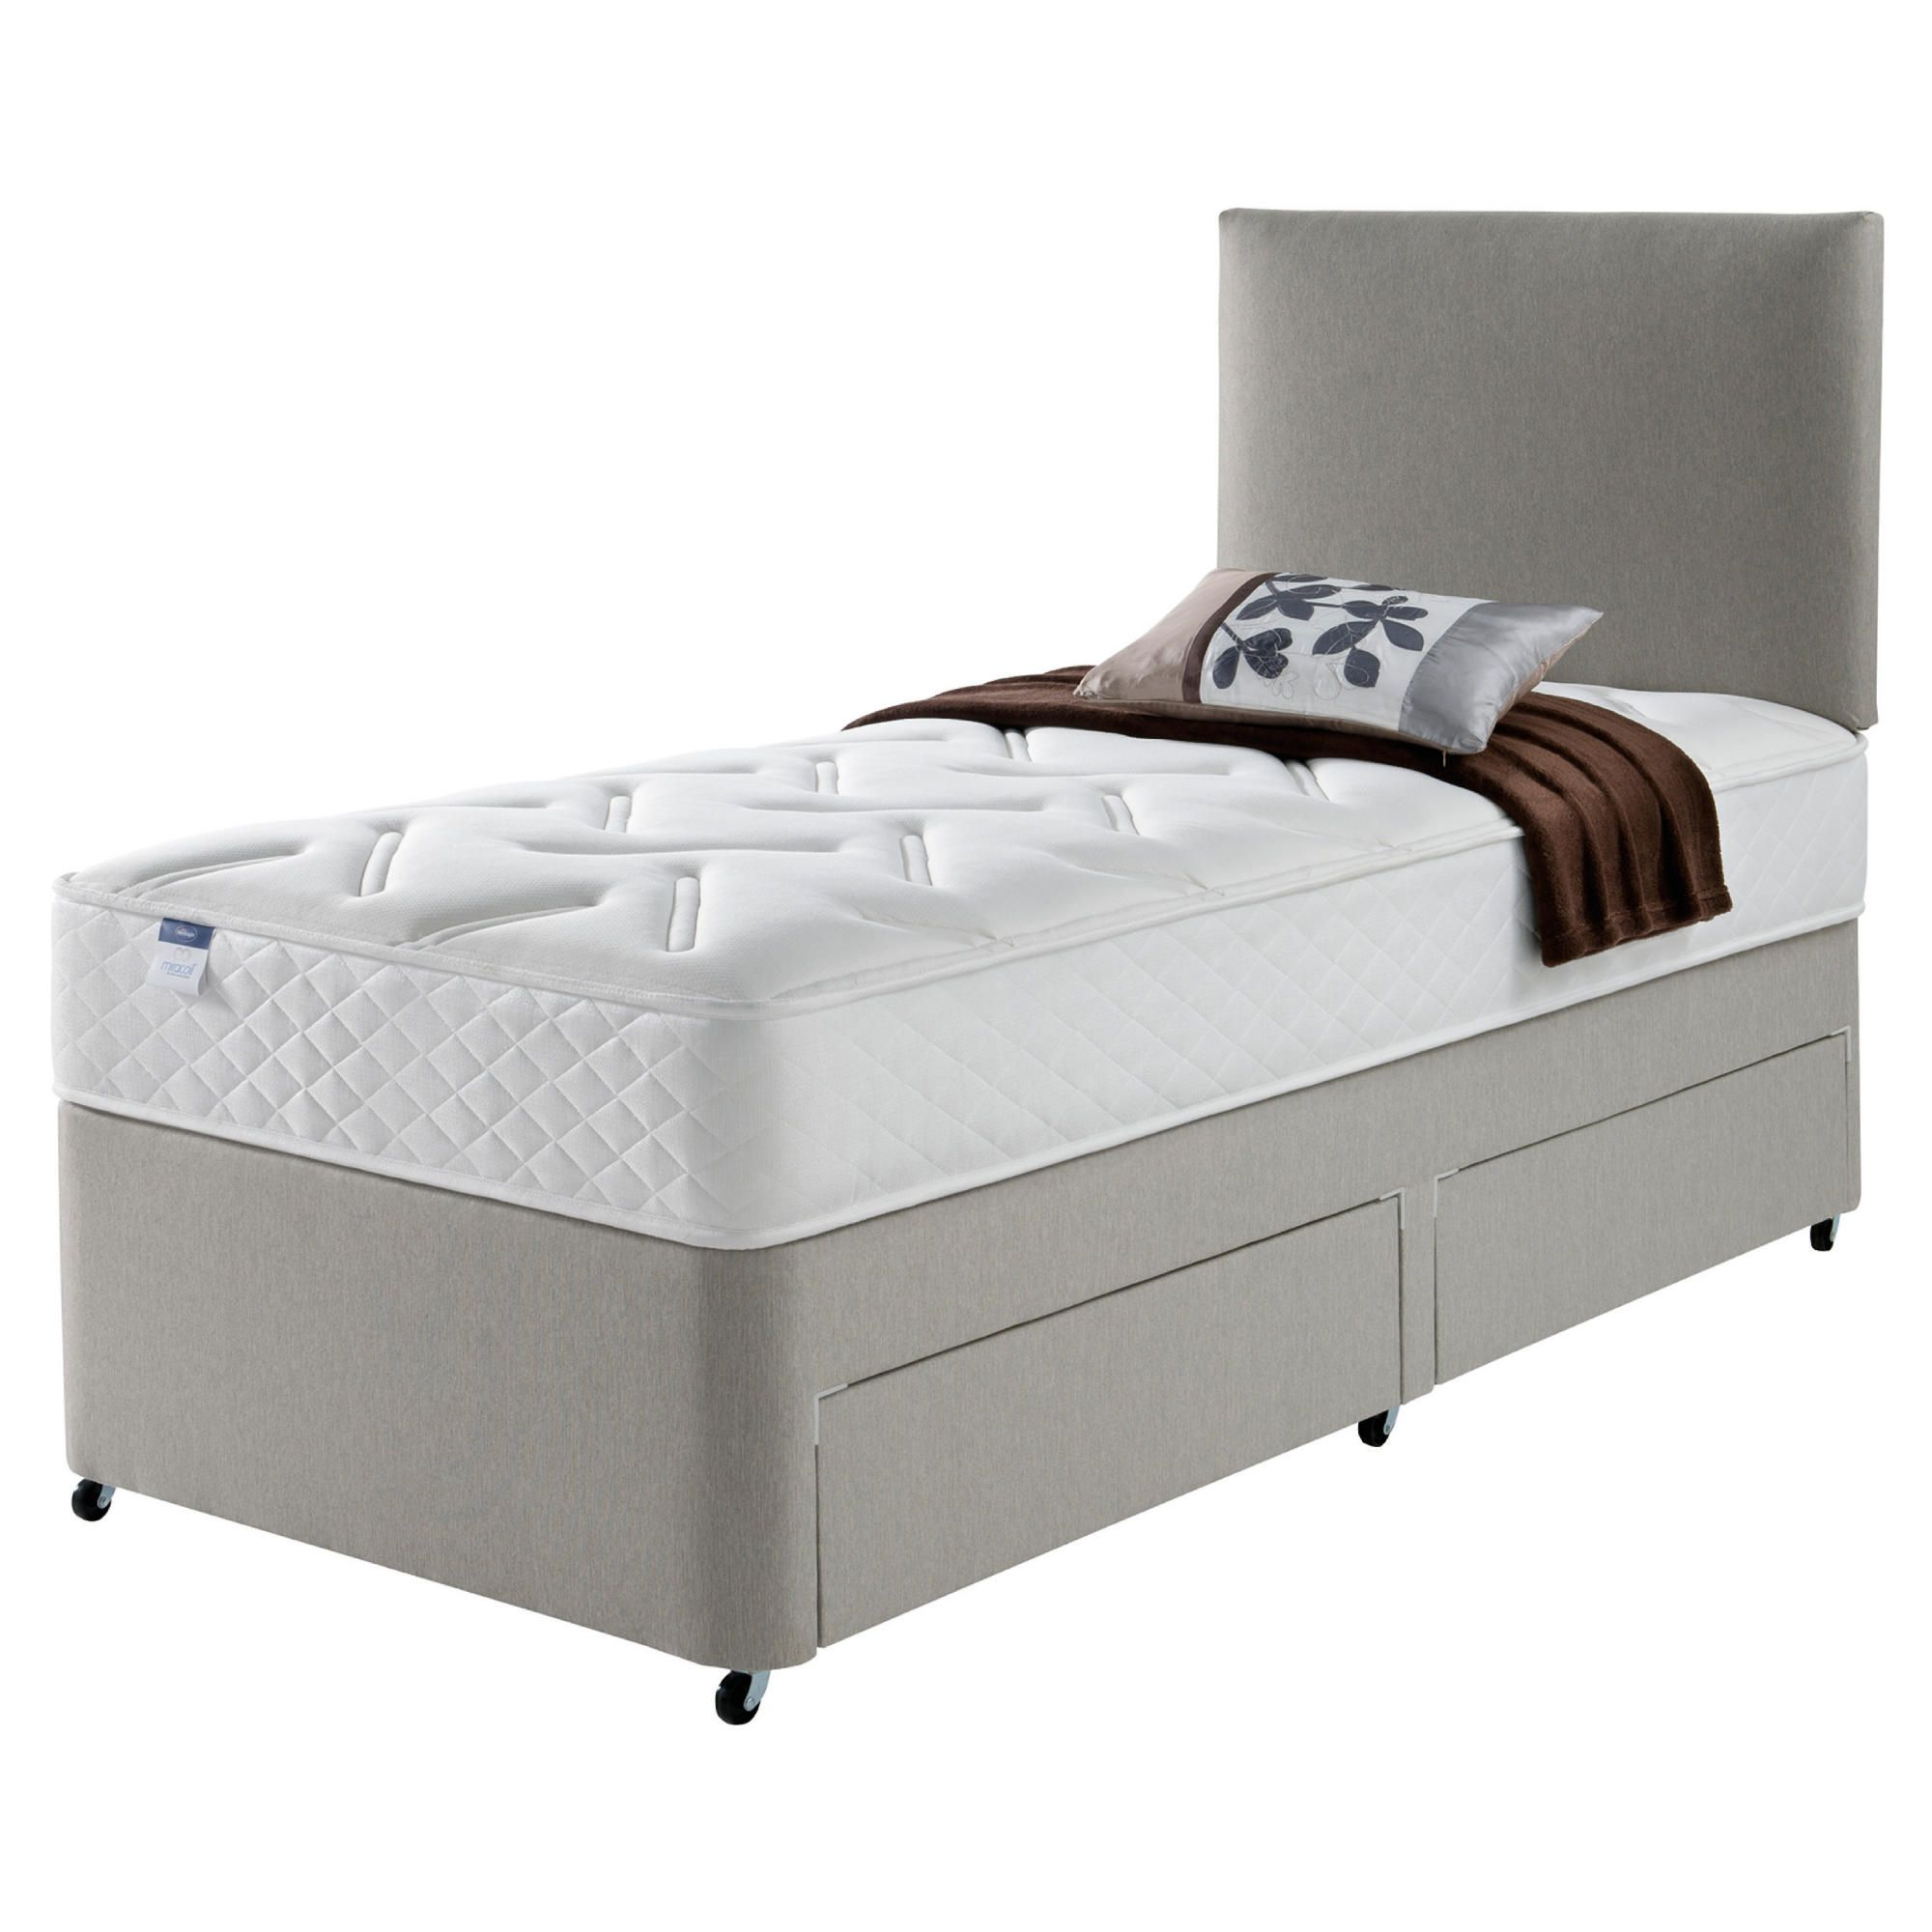 Home And Garden Furniture Hush Charleston Luxury Pocket Double 2 Drawer Divan Bed Special